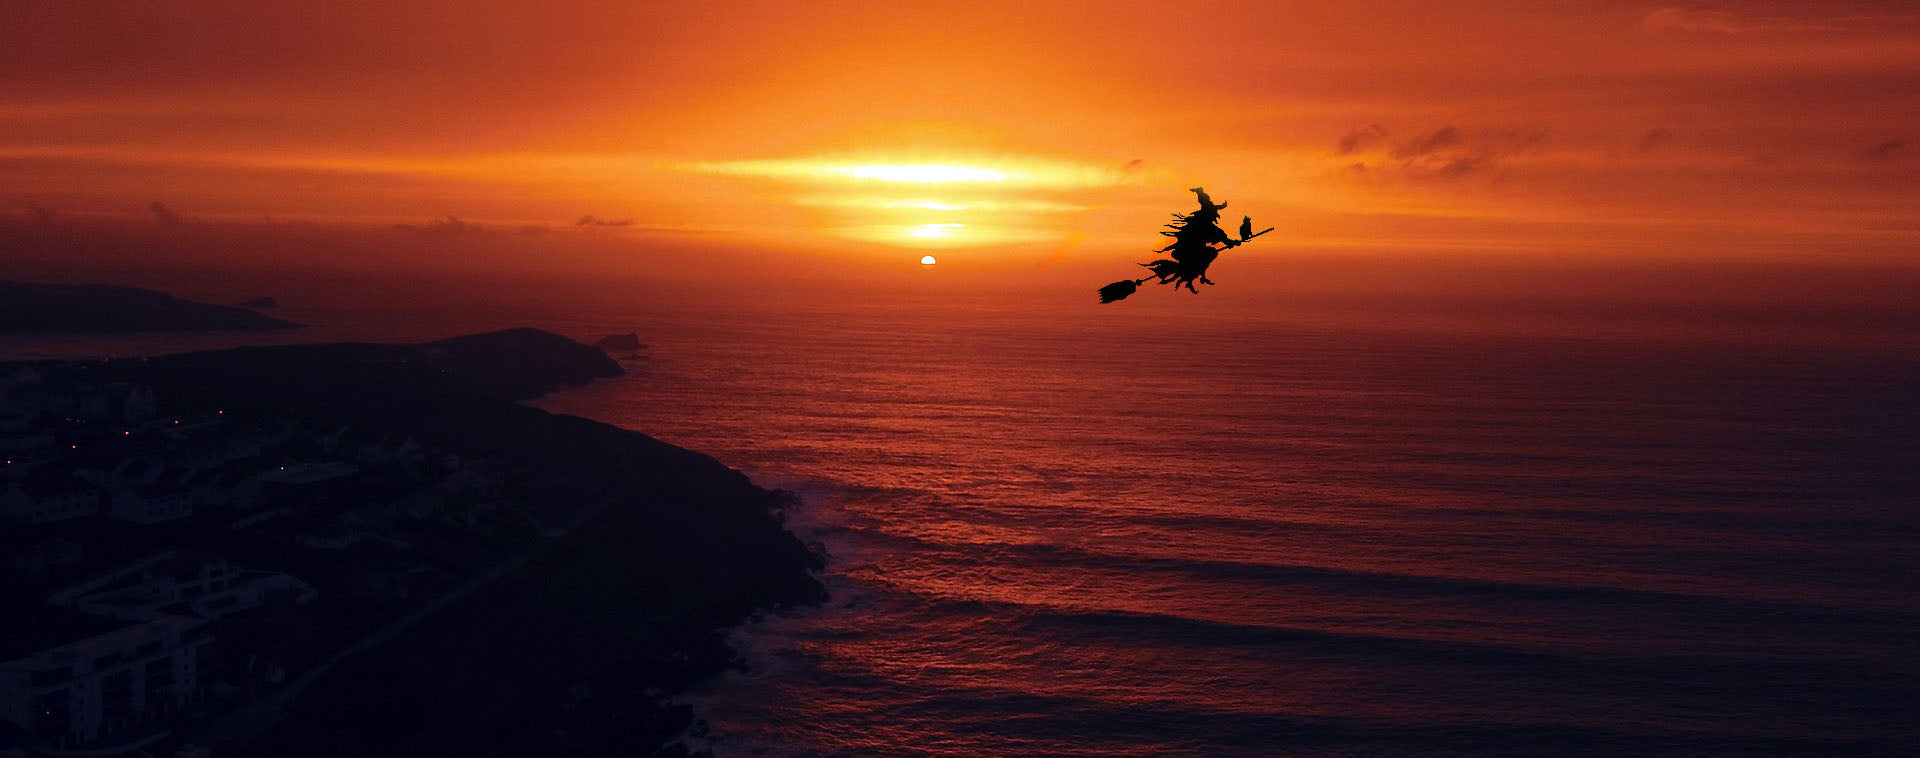 Quirky Treasure Trails - When the sun sets over Newquay, it can become quite spooky...